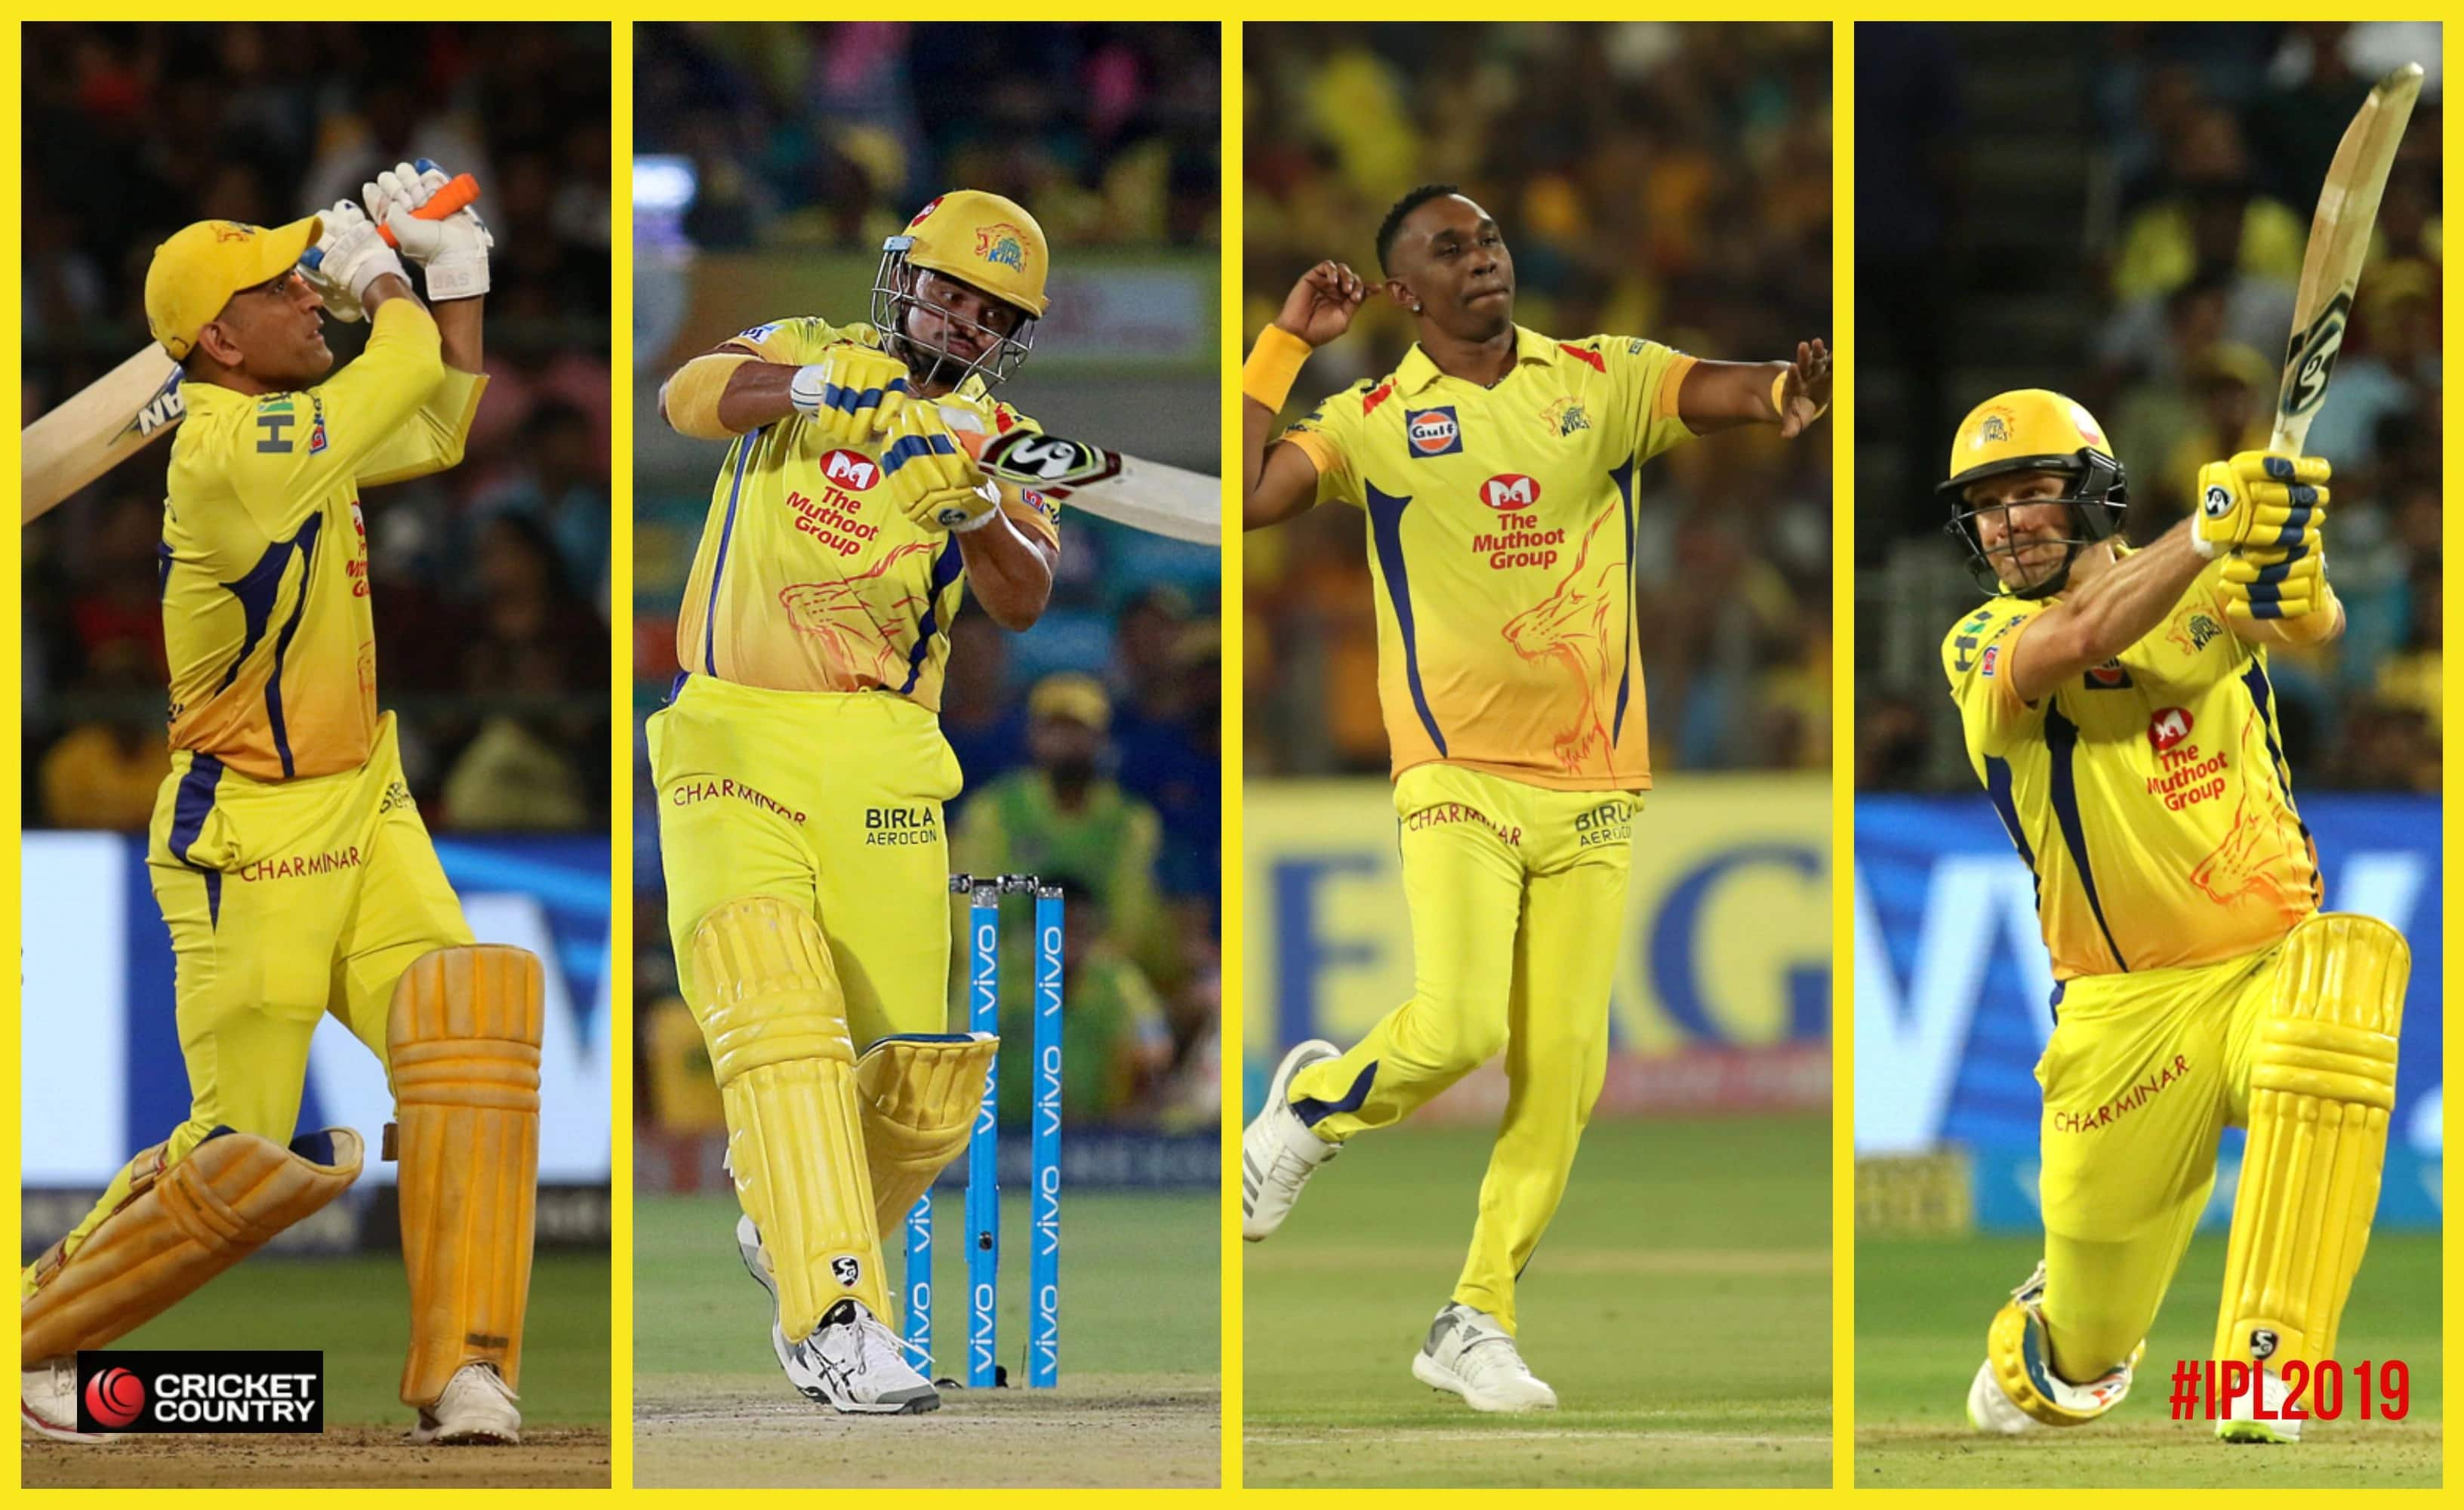 IPL 2019 team preview: Chennai Super Kings target encore